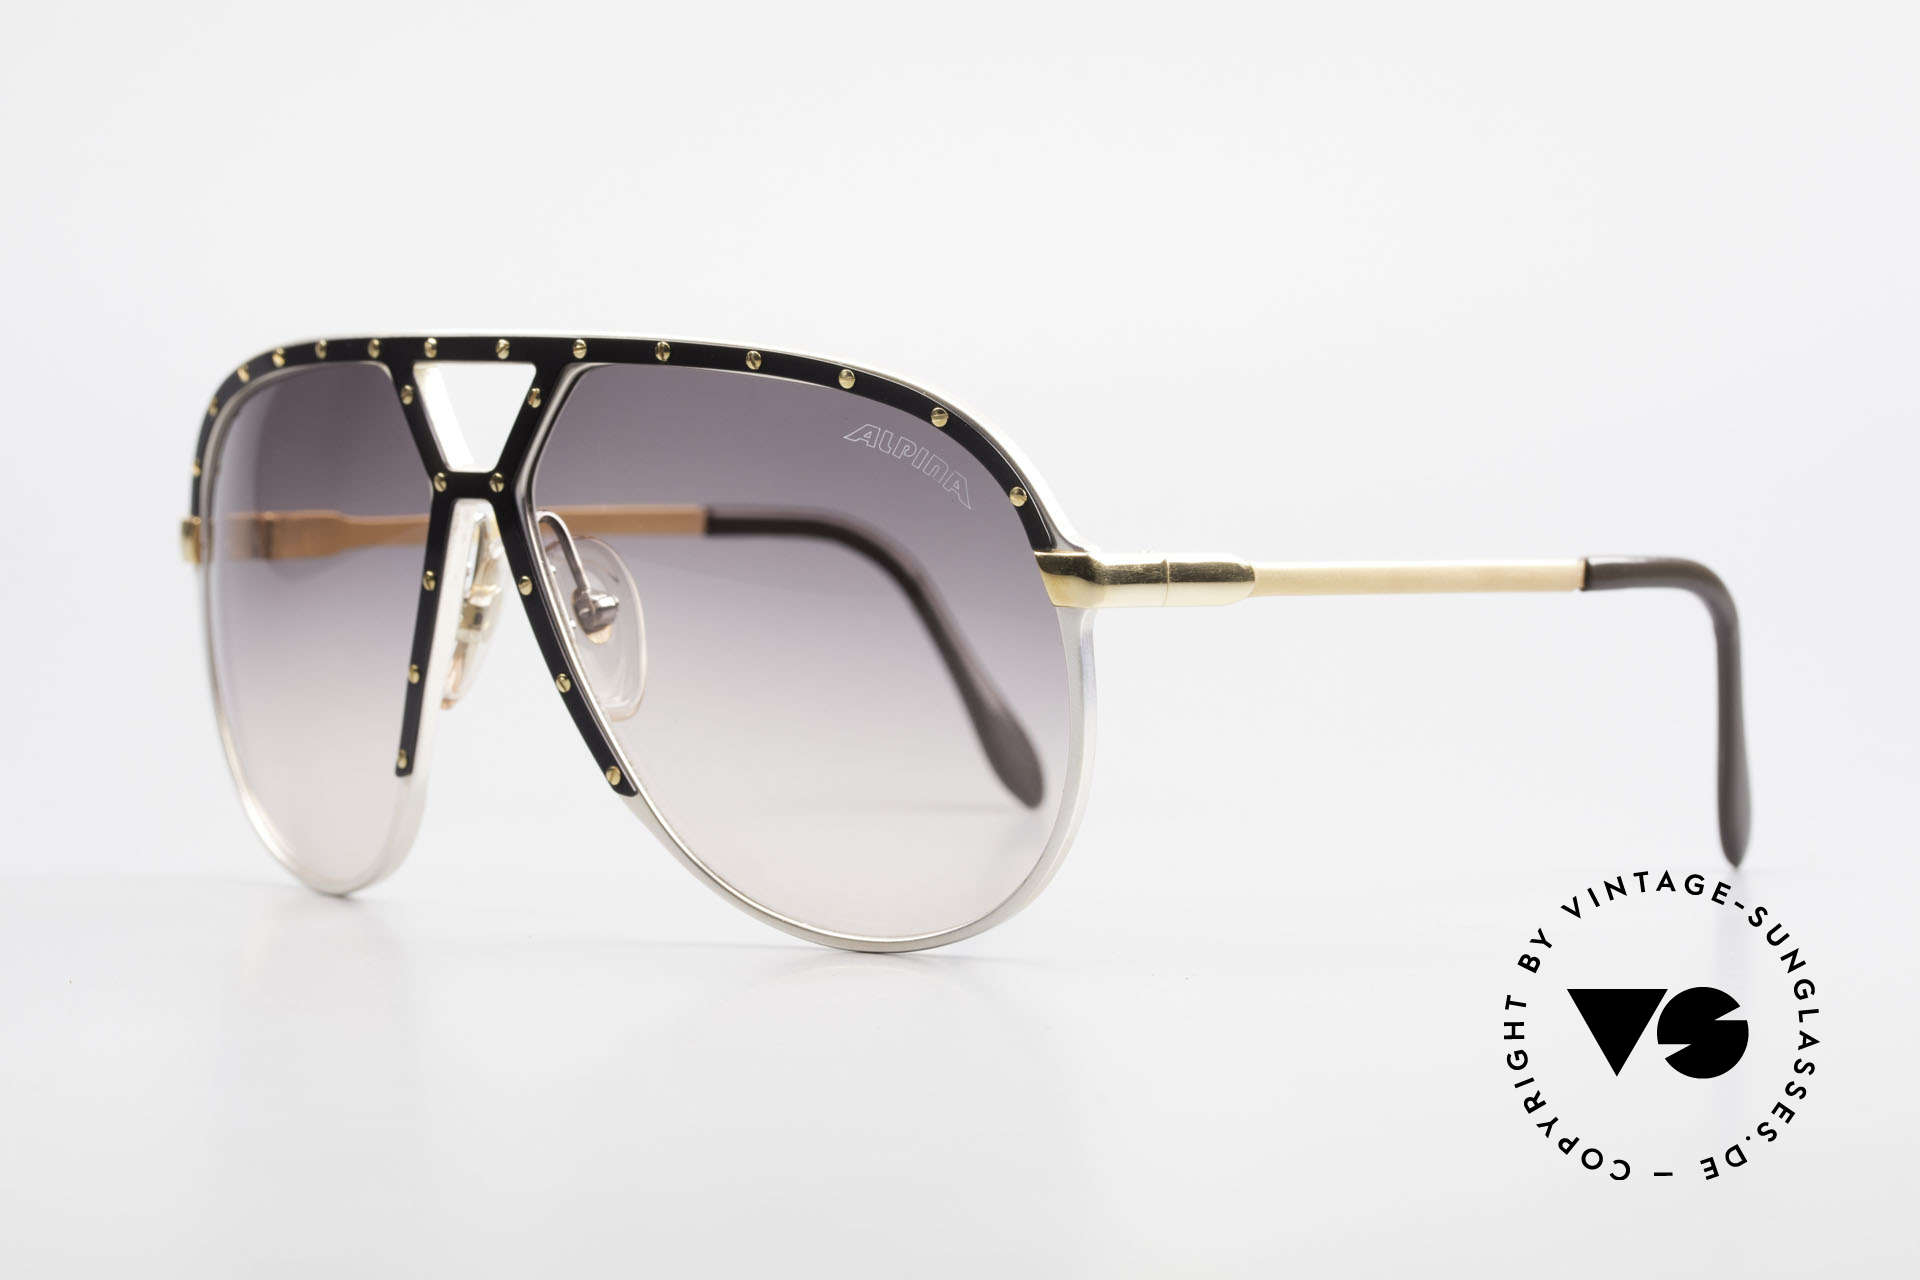 Alpina M1 Stevie Wonder 80's Sunglasses, ultra rare special edition (silver / black and gold), Made for Men